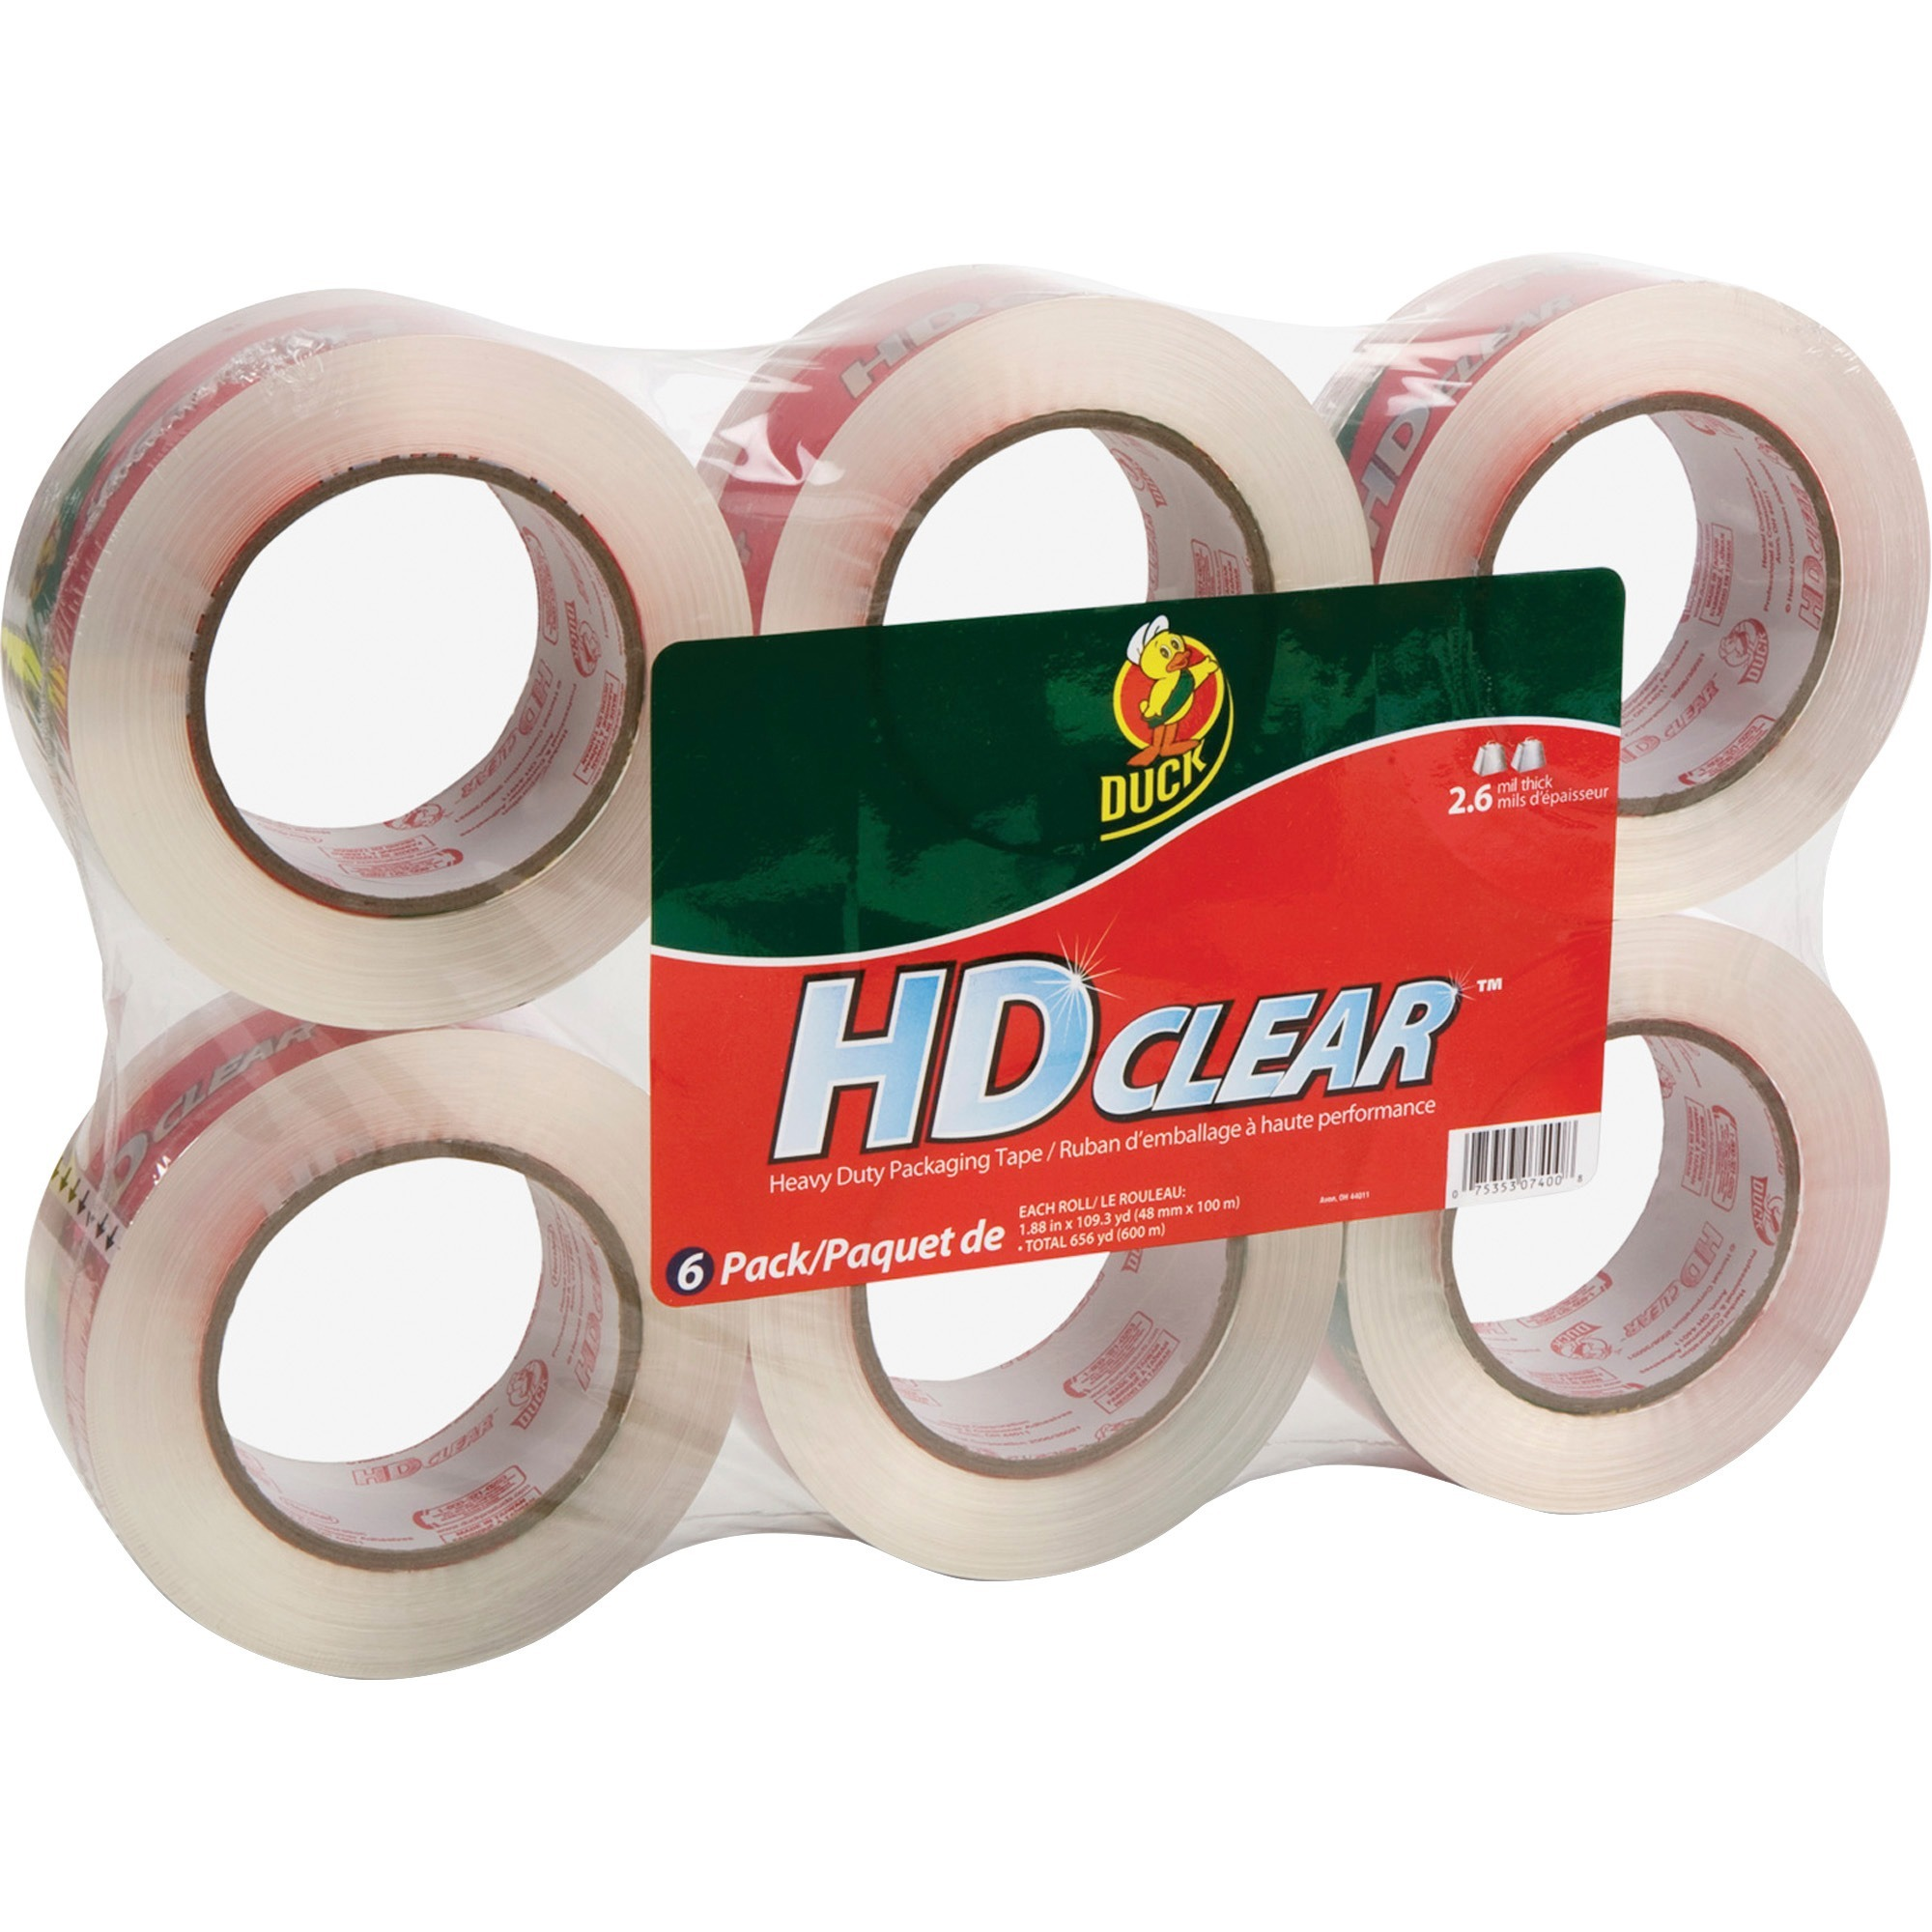 Duck HD Clear Packaging Tape, 1.88 in. x 109.3 yd., Clear, 6-Count